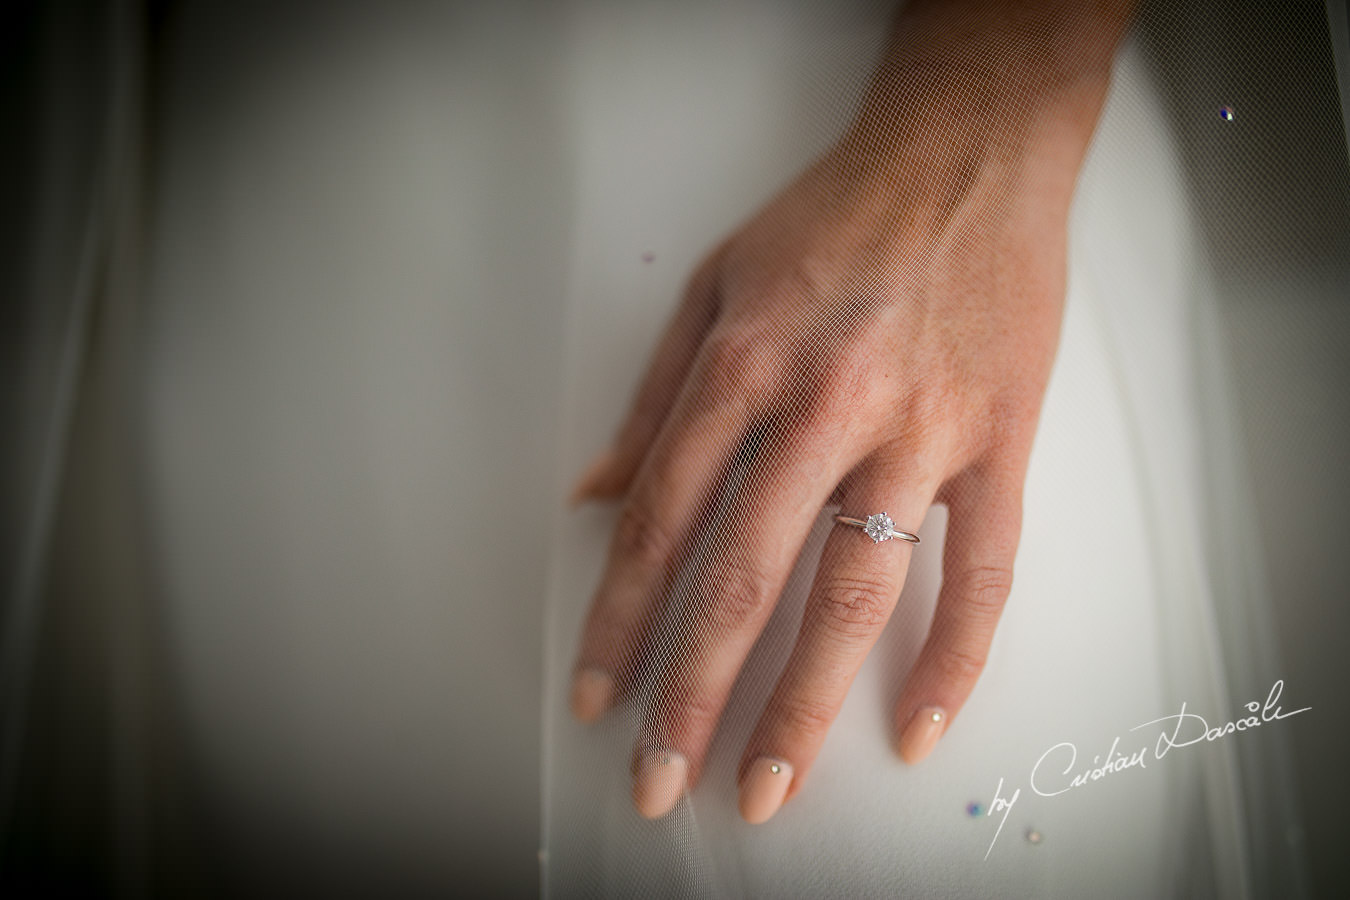 Engagement ring captured by Cristian Dascalu during an elegant Aphrodite Hills Wedding in Cyprus.